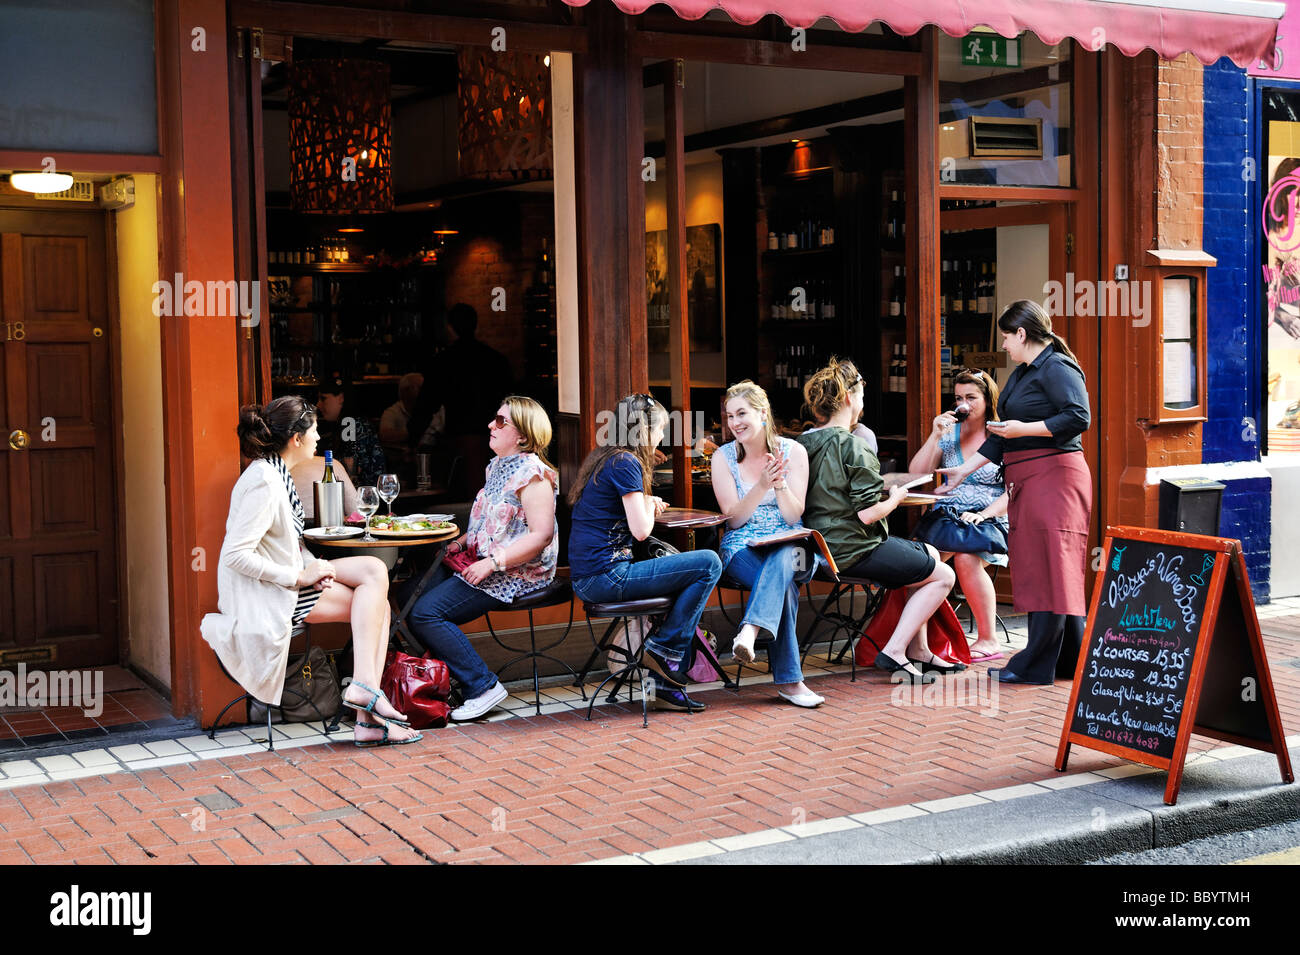 Group of women dinning alfresco in trendy cafe Dublin Republic of Ireland - Stock Image